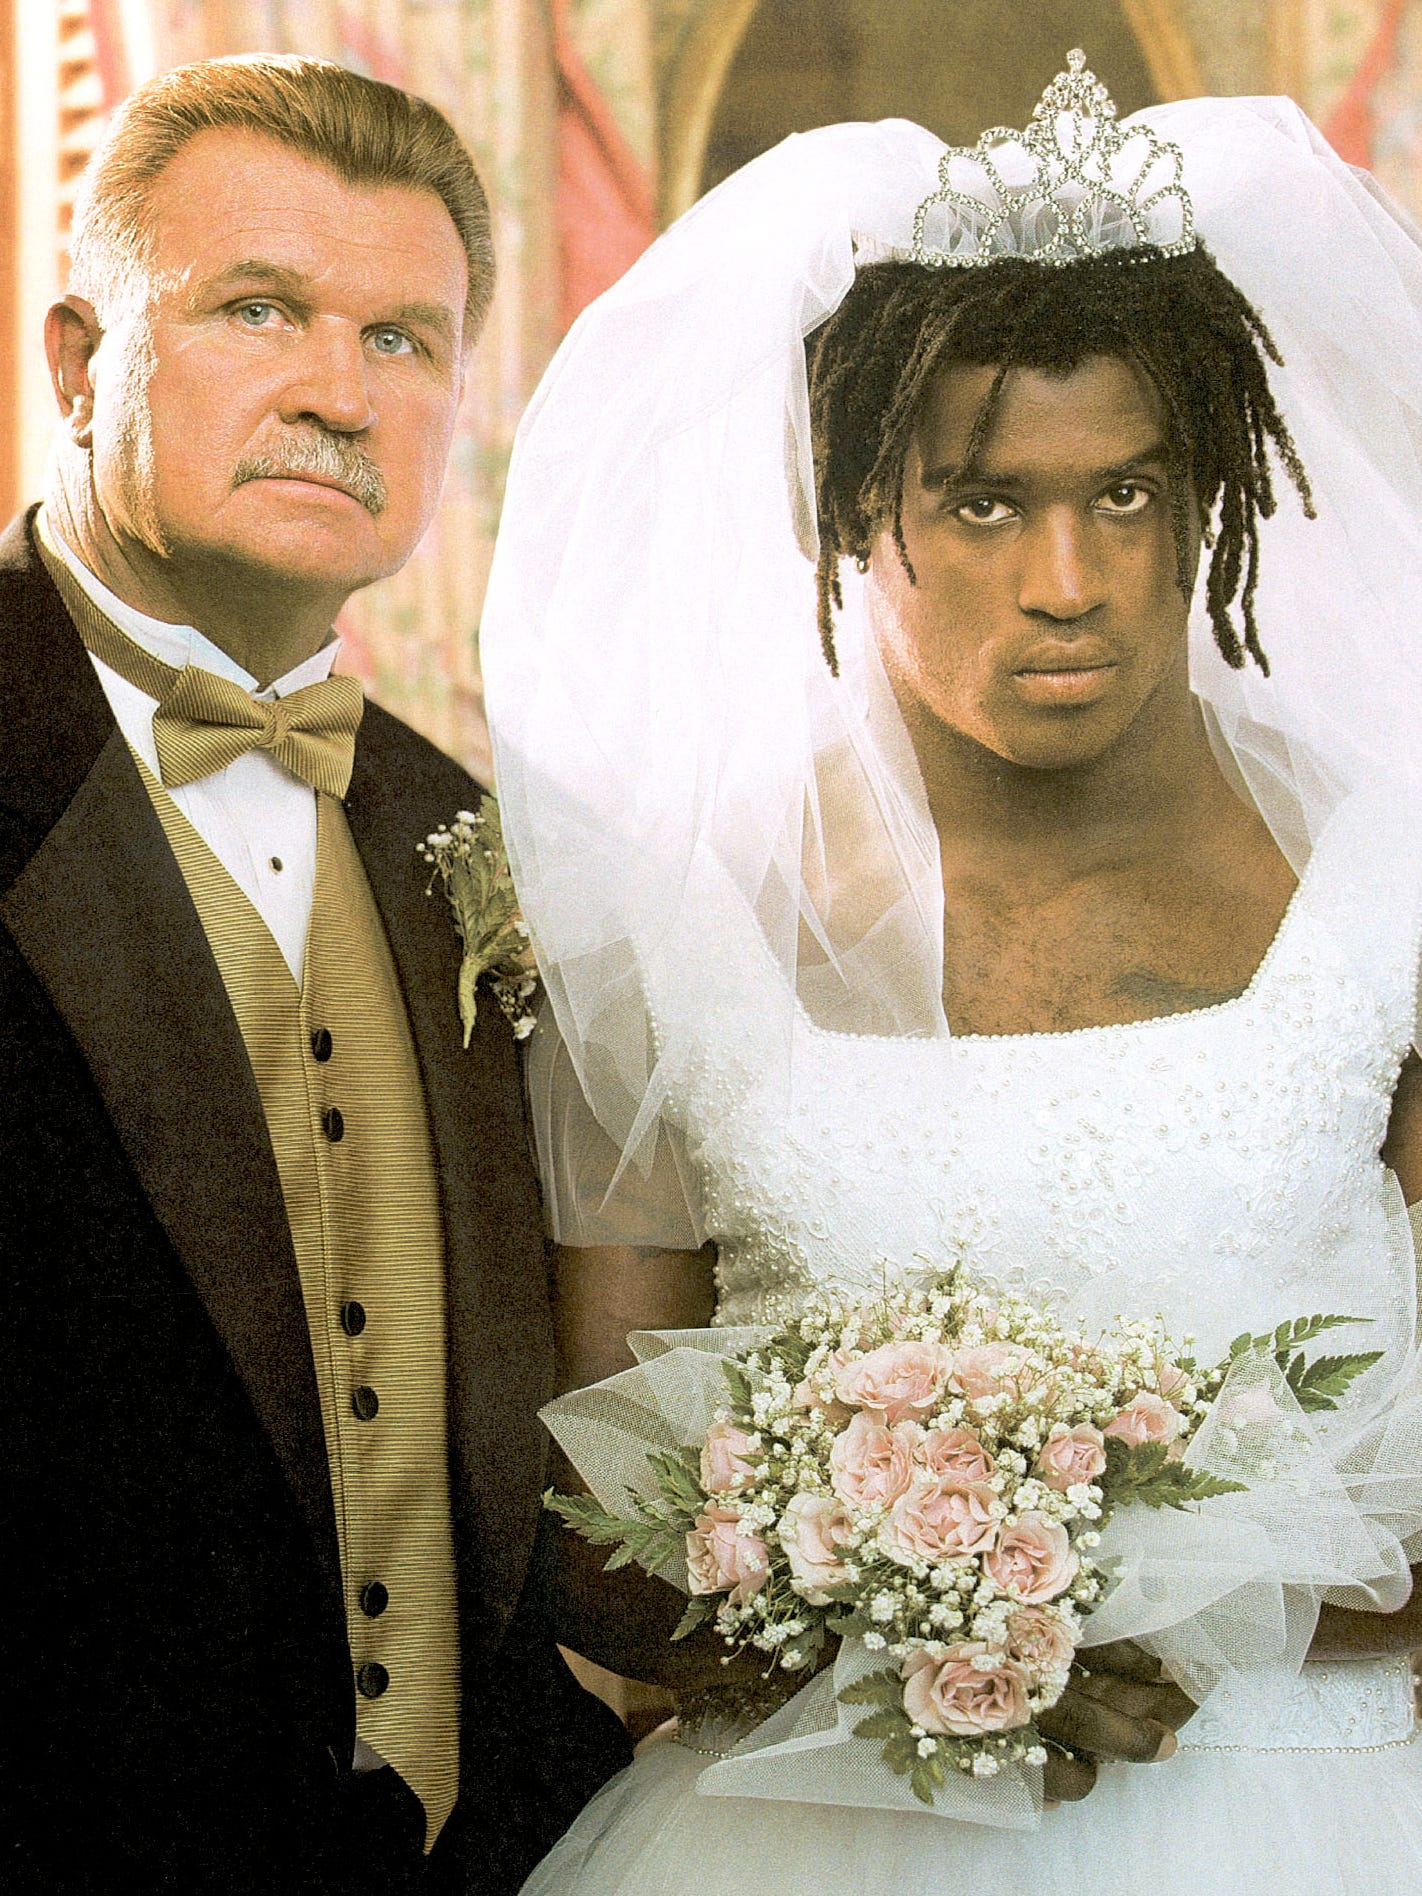 New Orleans Saints coach Mike Ditka and running back Ricky WIlliams appeared on the cover of 'ESPN The Magazine' in 1999 after Williams had been drafted by the team.